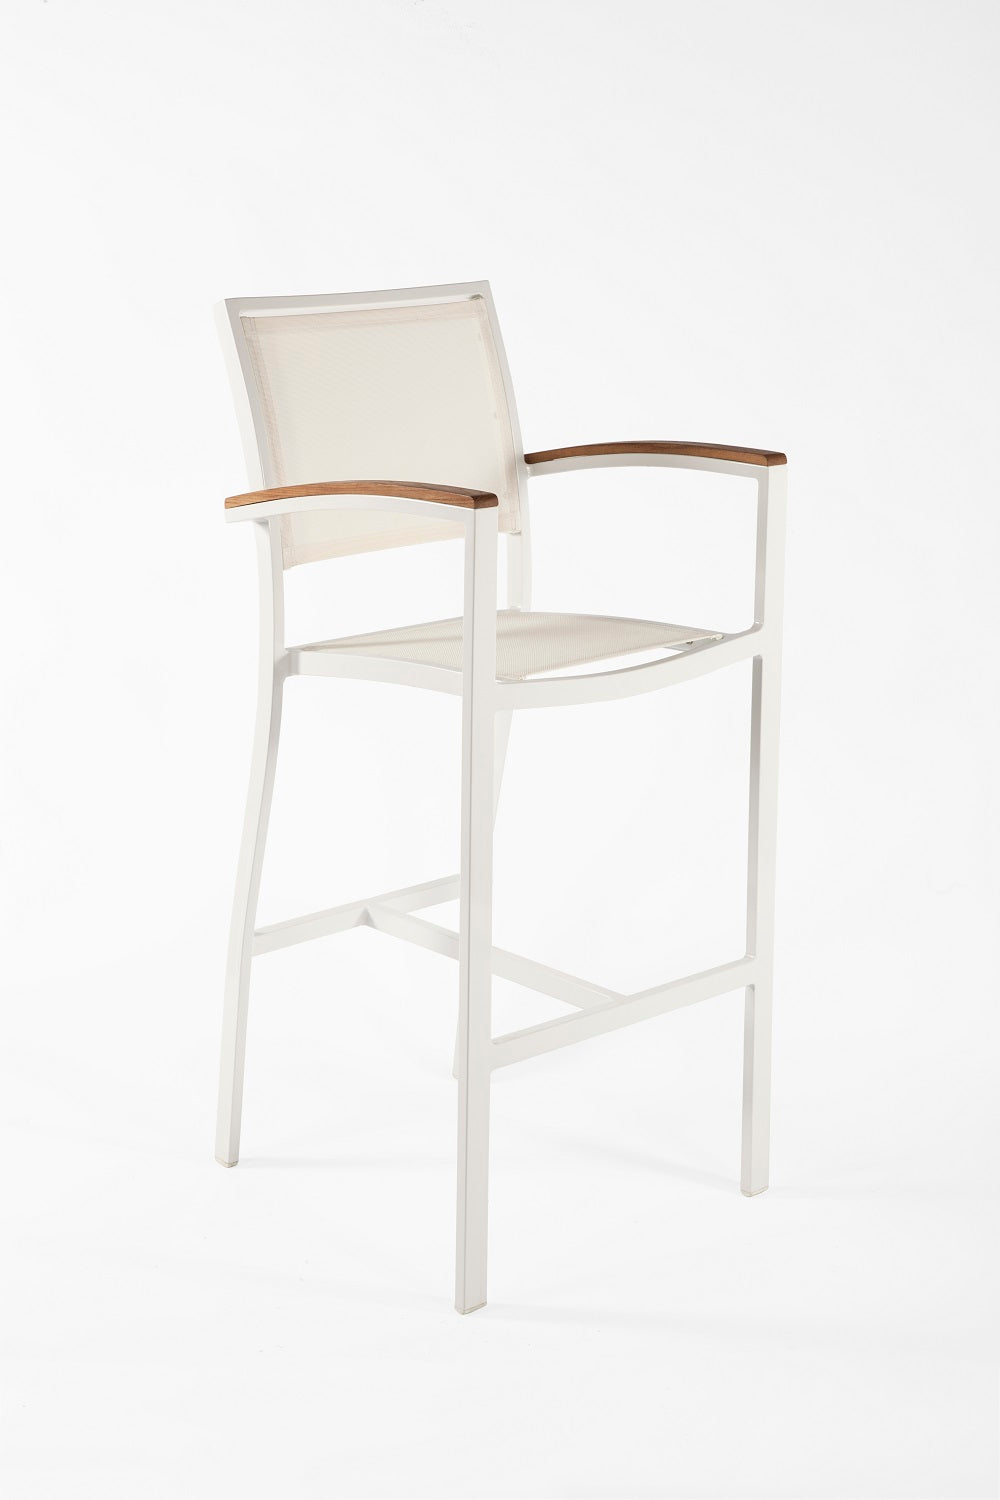 The Flevoland Bar Chair